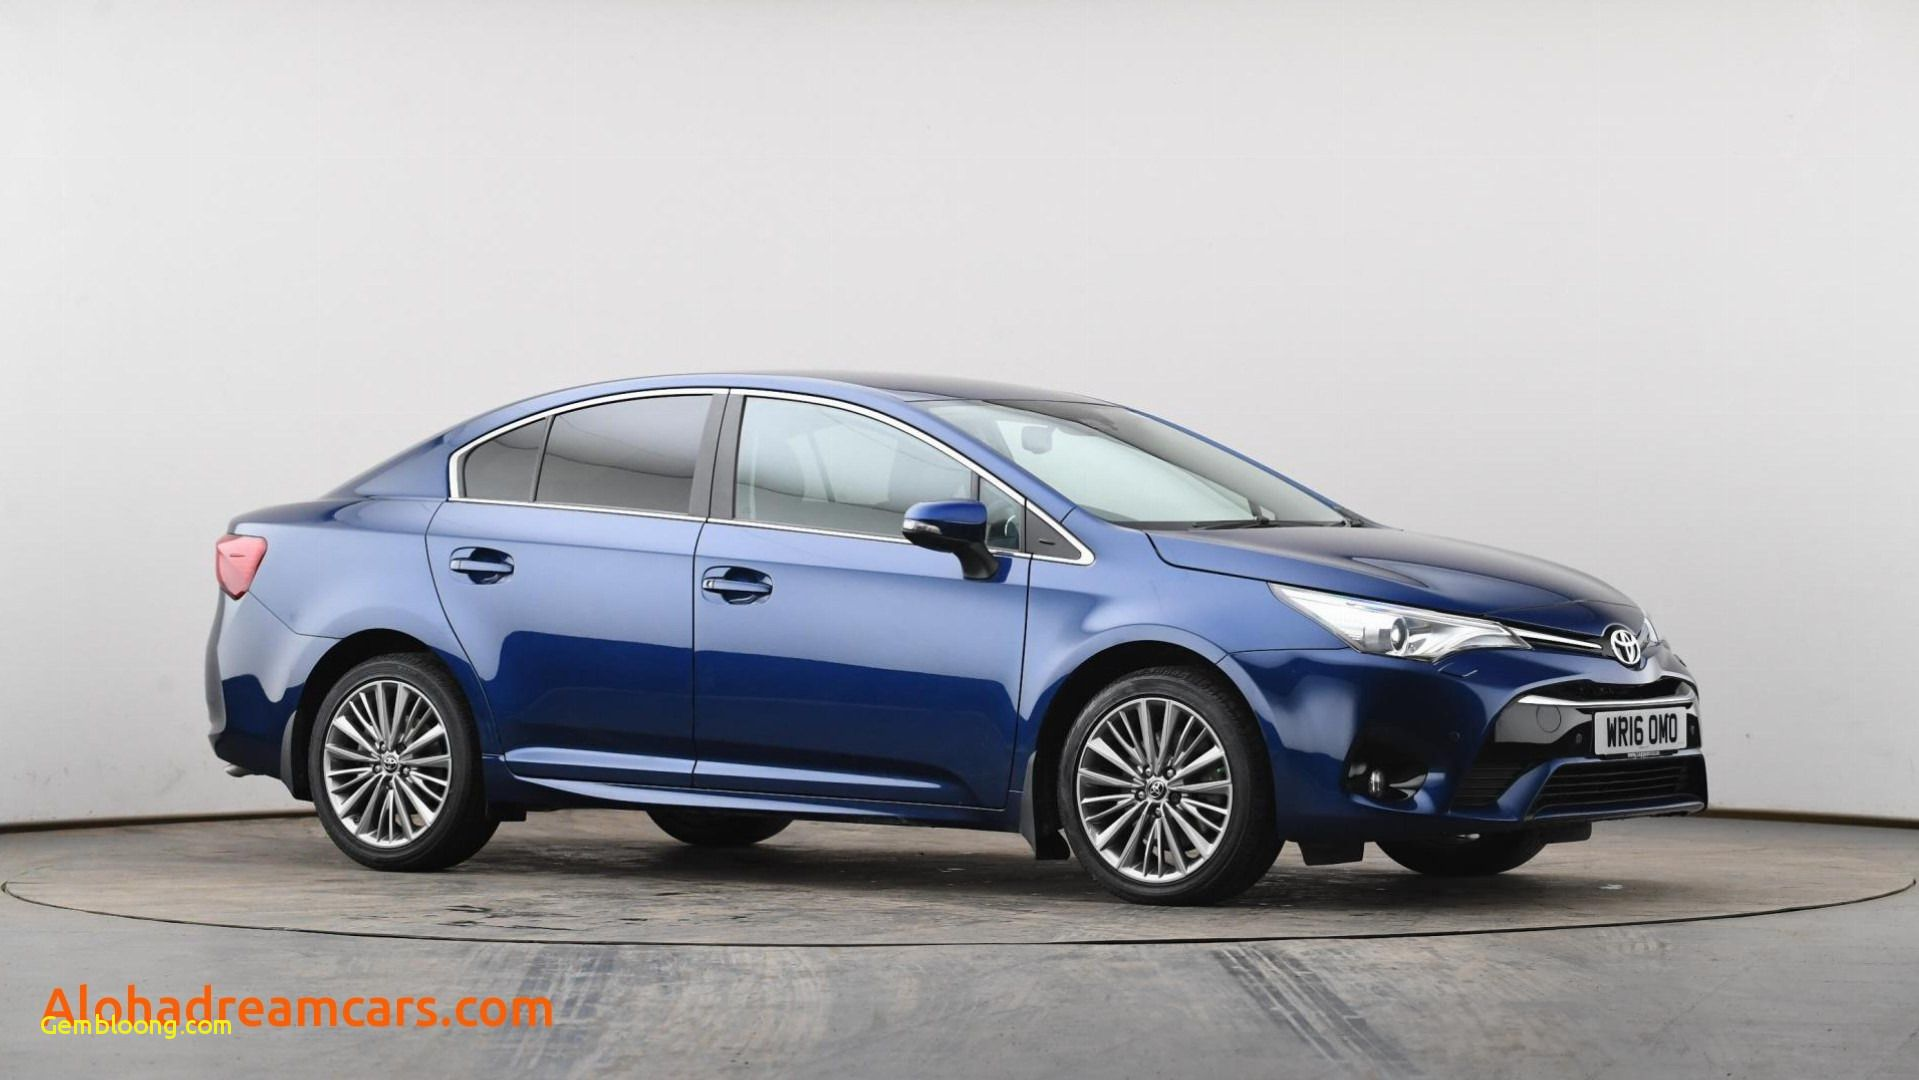 Toyota Avensis 2019 Check More At Http Www New Cars Club 2019 07 07 Toyota Avensis 2019 Sedan Toyota